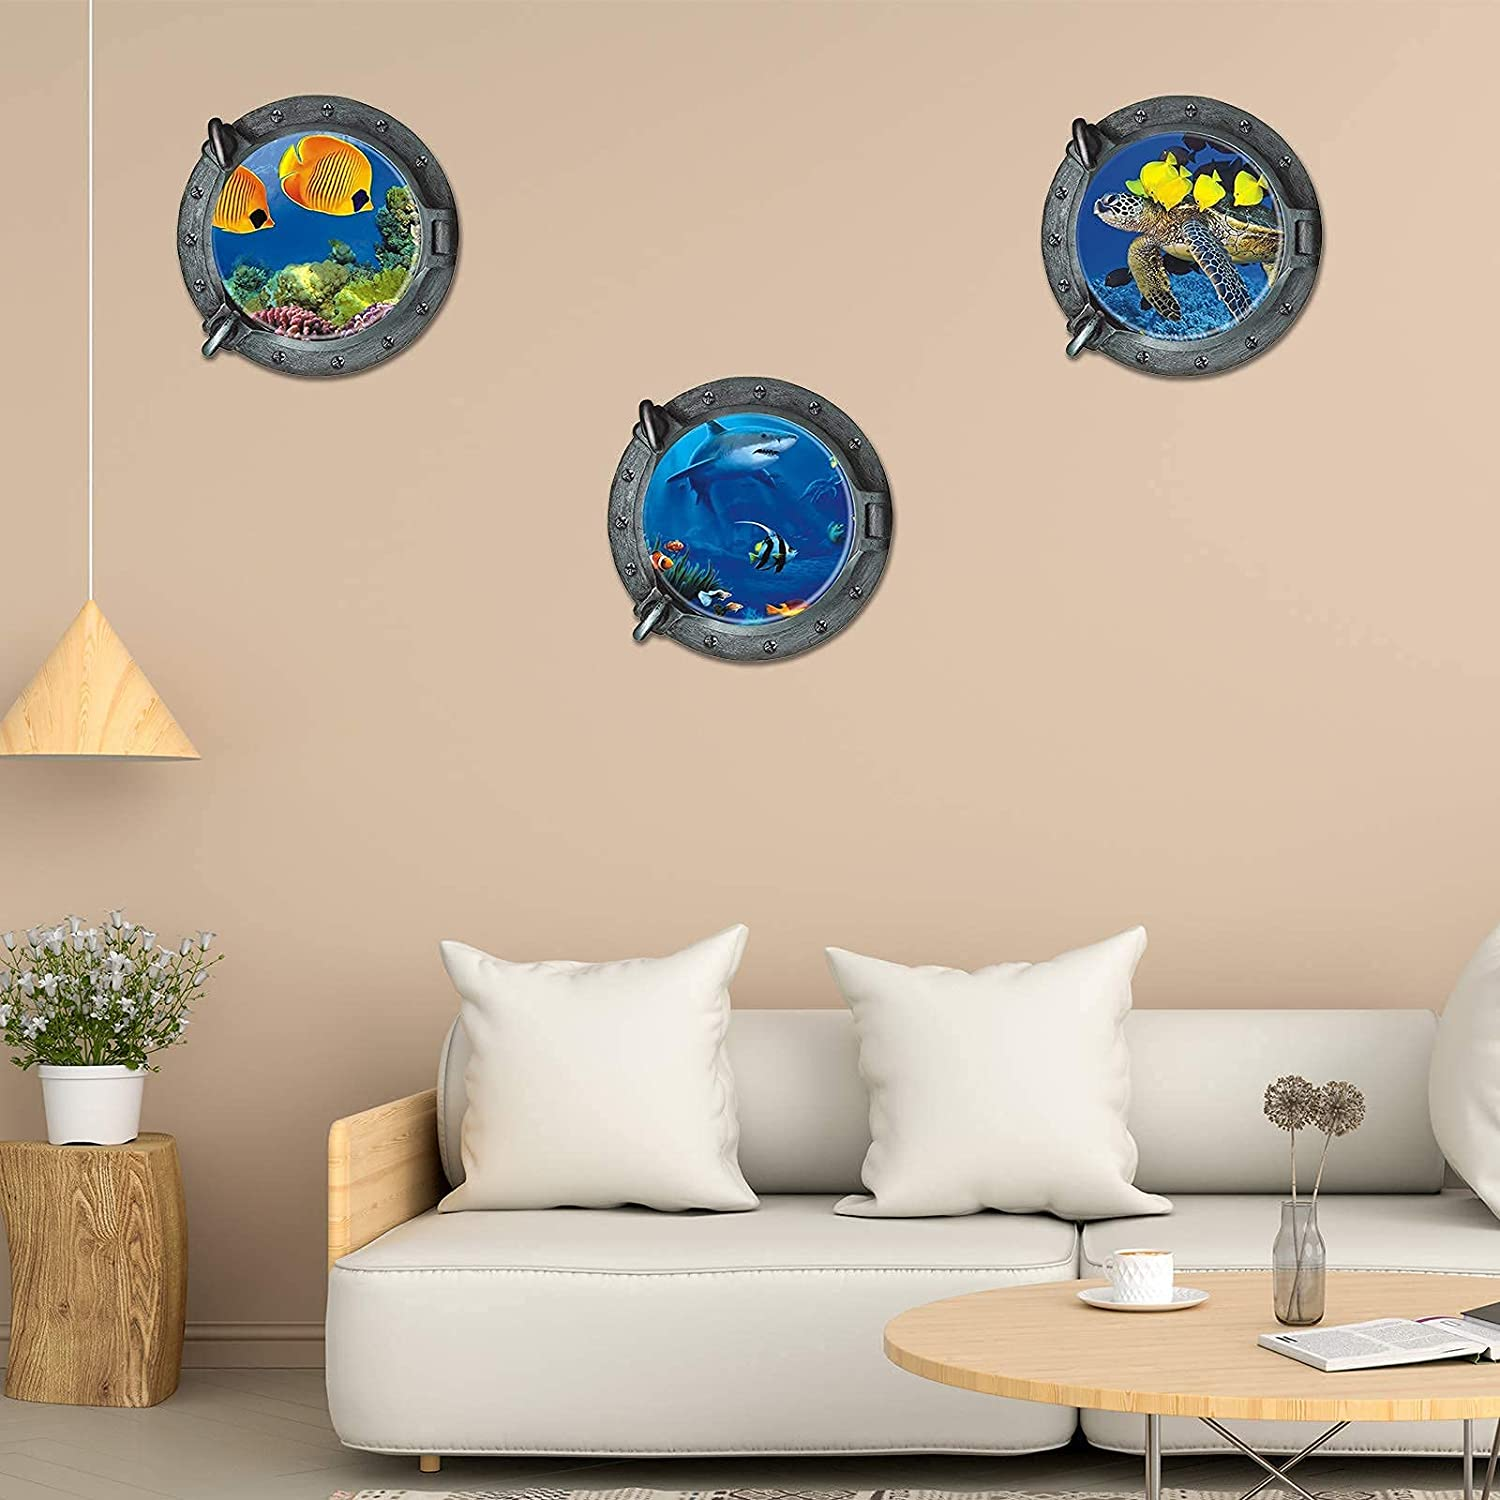 3PCS Ocean World Wall Stickers, DILIBRA Whale Fish Turtle Shark Porthole 3D Unde The Sea Life Wall Decal, Peel and Stick Removabl Wall Decor for Kids Nursery Bedroom Living Room Decoration